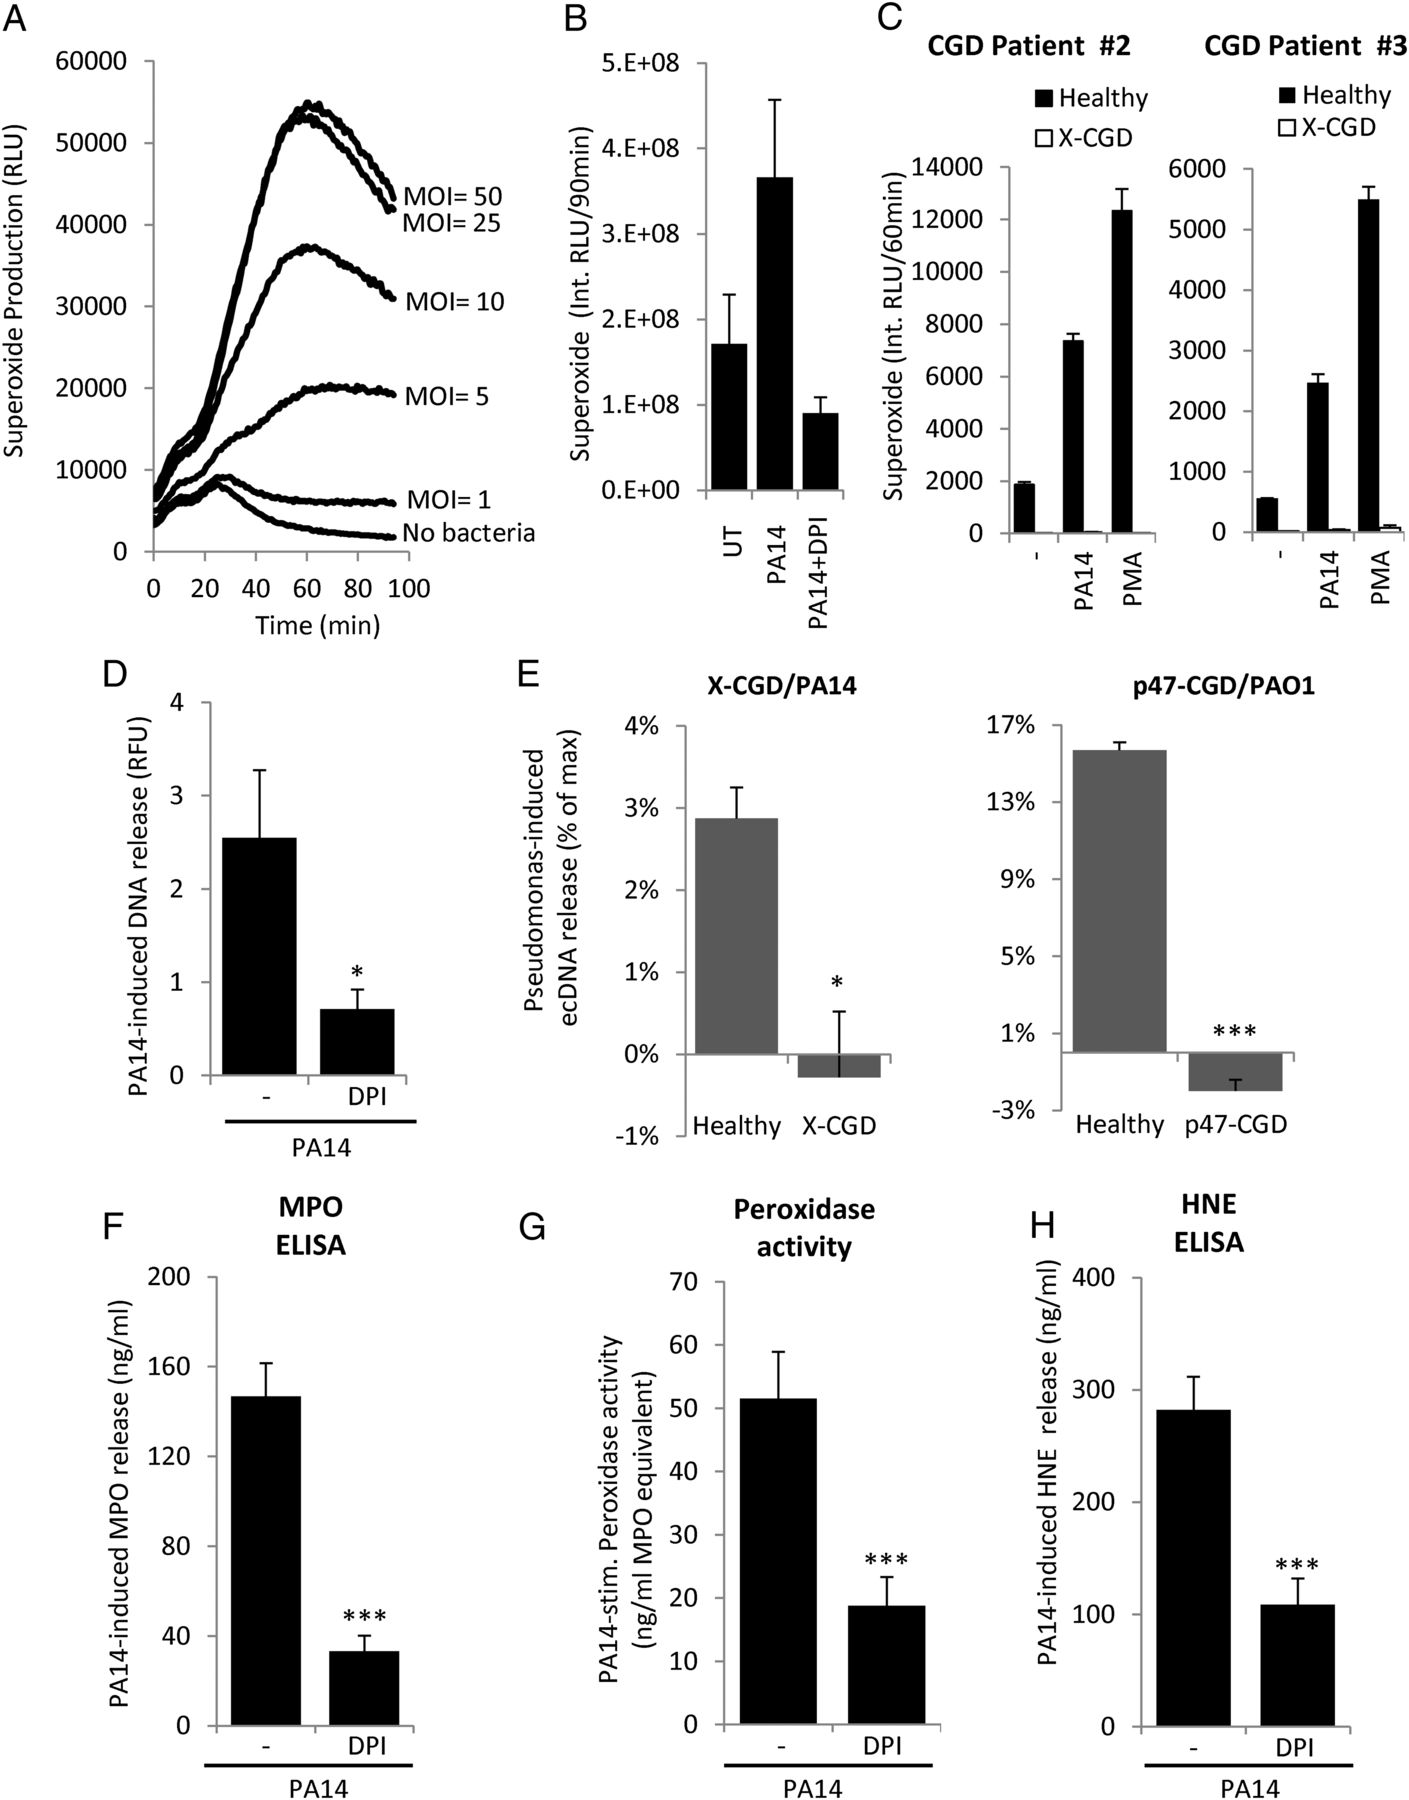 Release Of Cystic Fibrosis Airway Inflammatory Markers From Pseudomonas Aeruginosa Stimulated